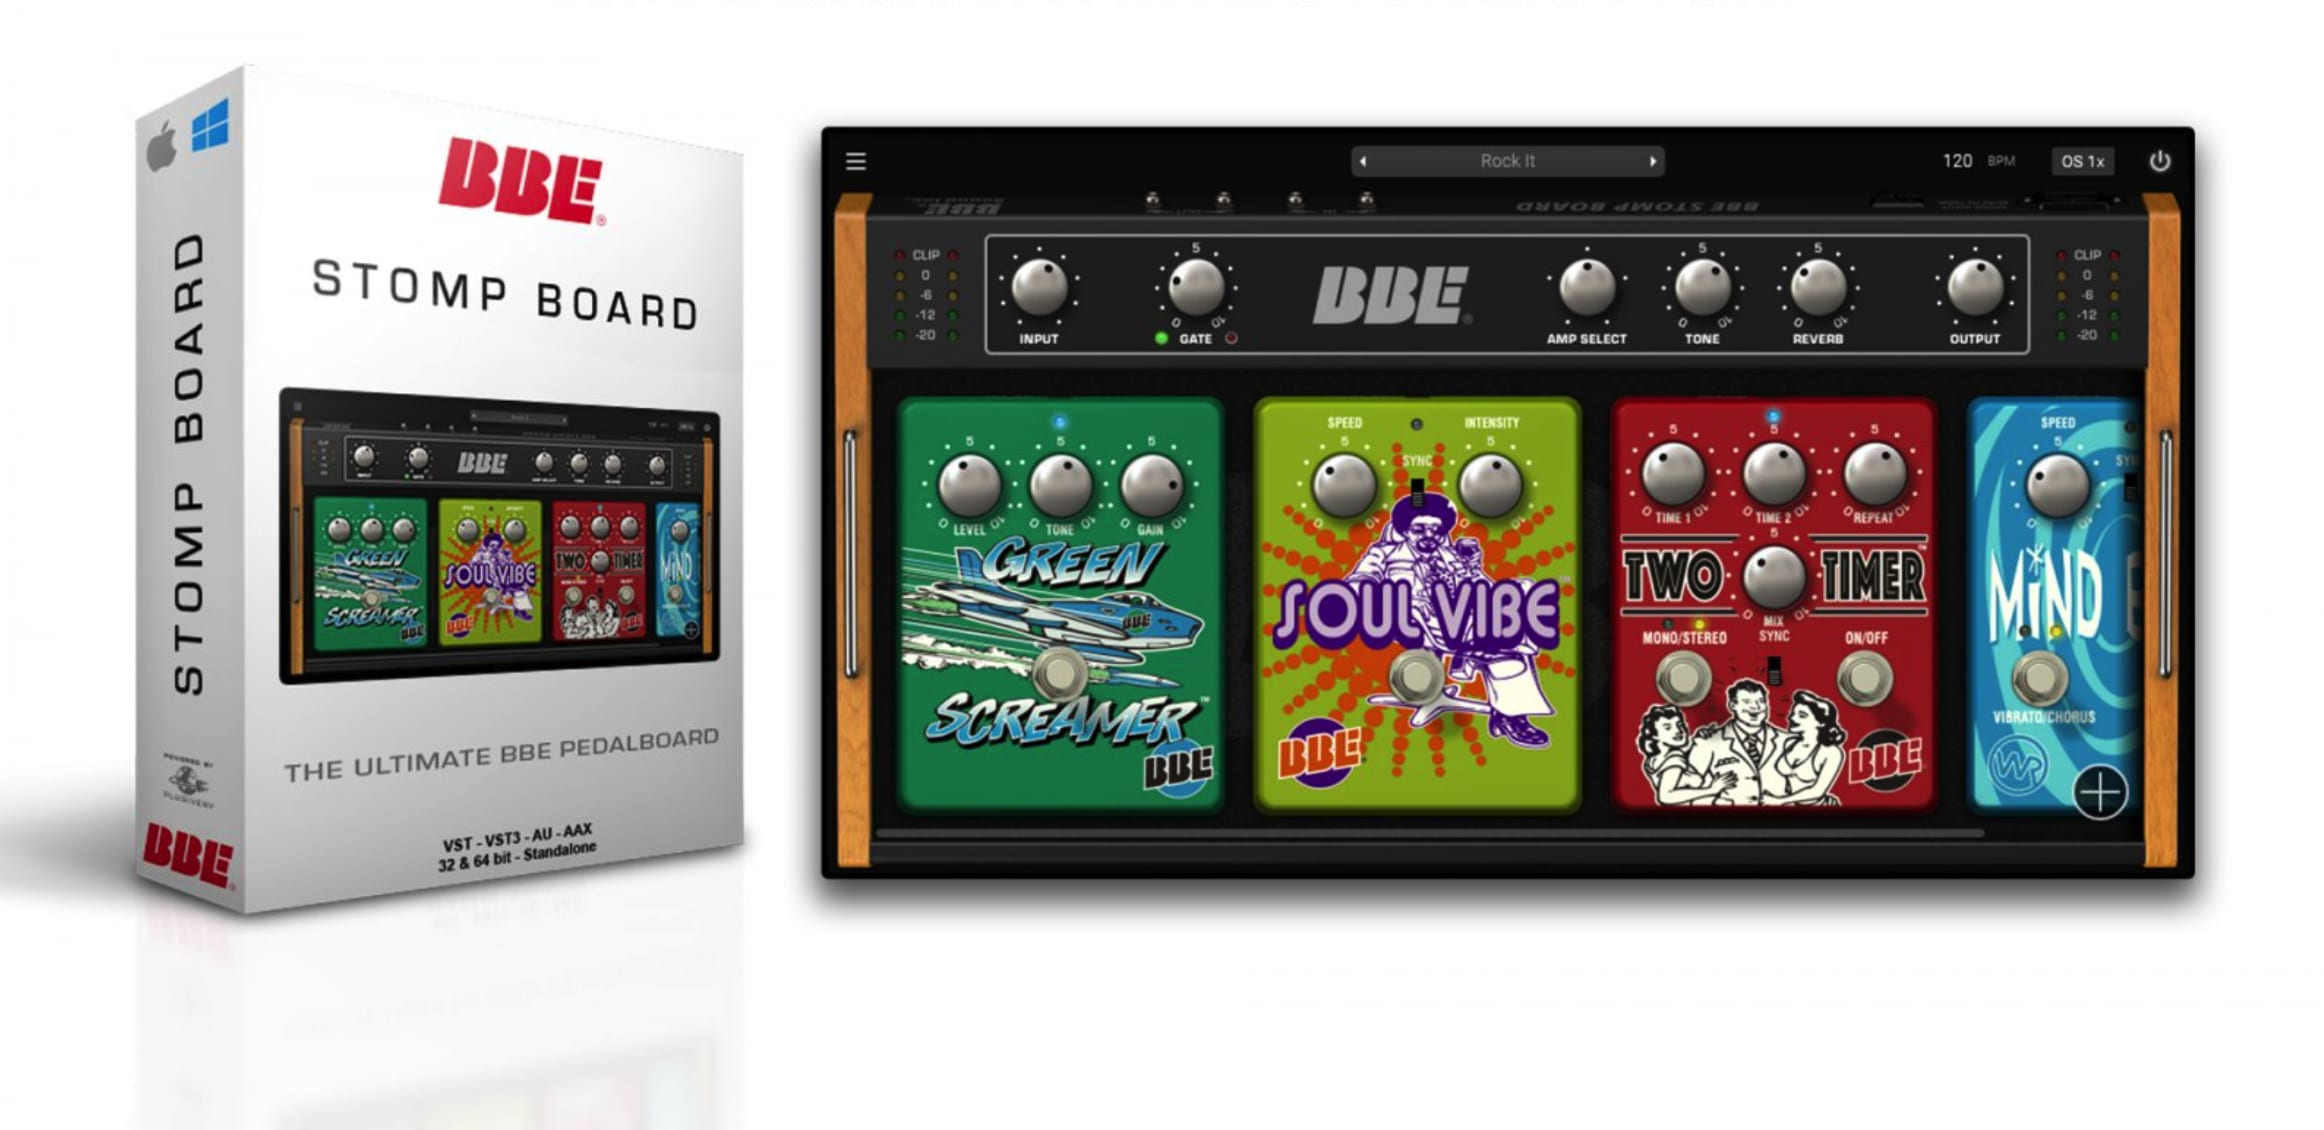 bbe 39 s new stomp board models its guitar effect pedals in software. Black Bedroom Furniture Sets. Home Design Ideas